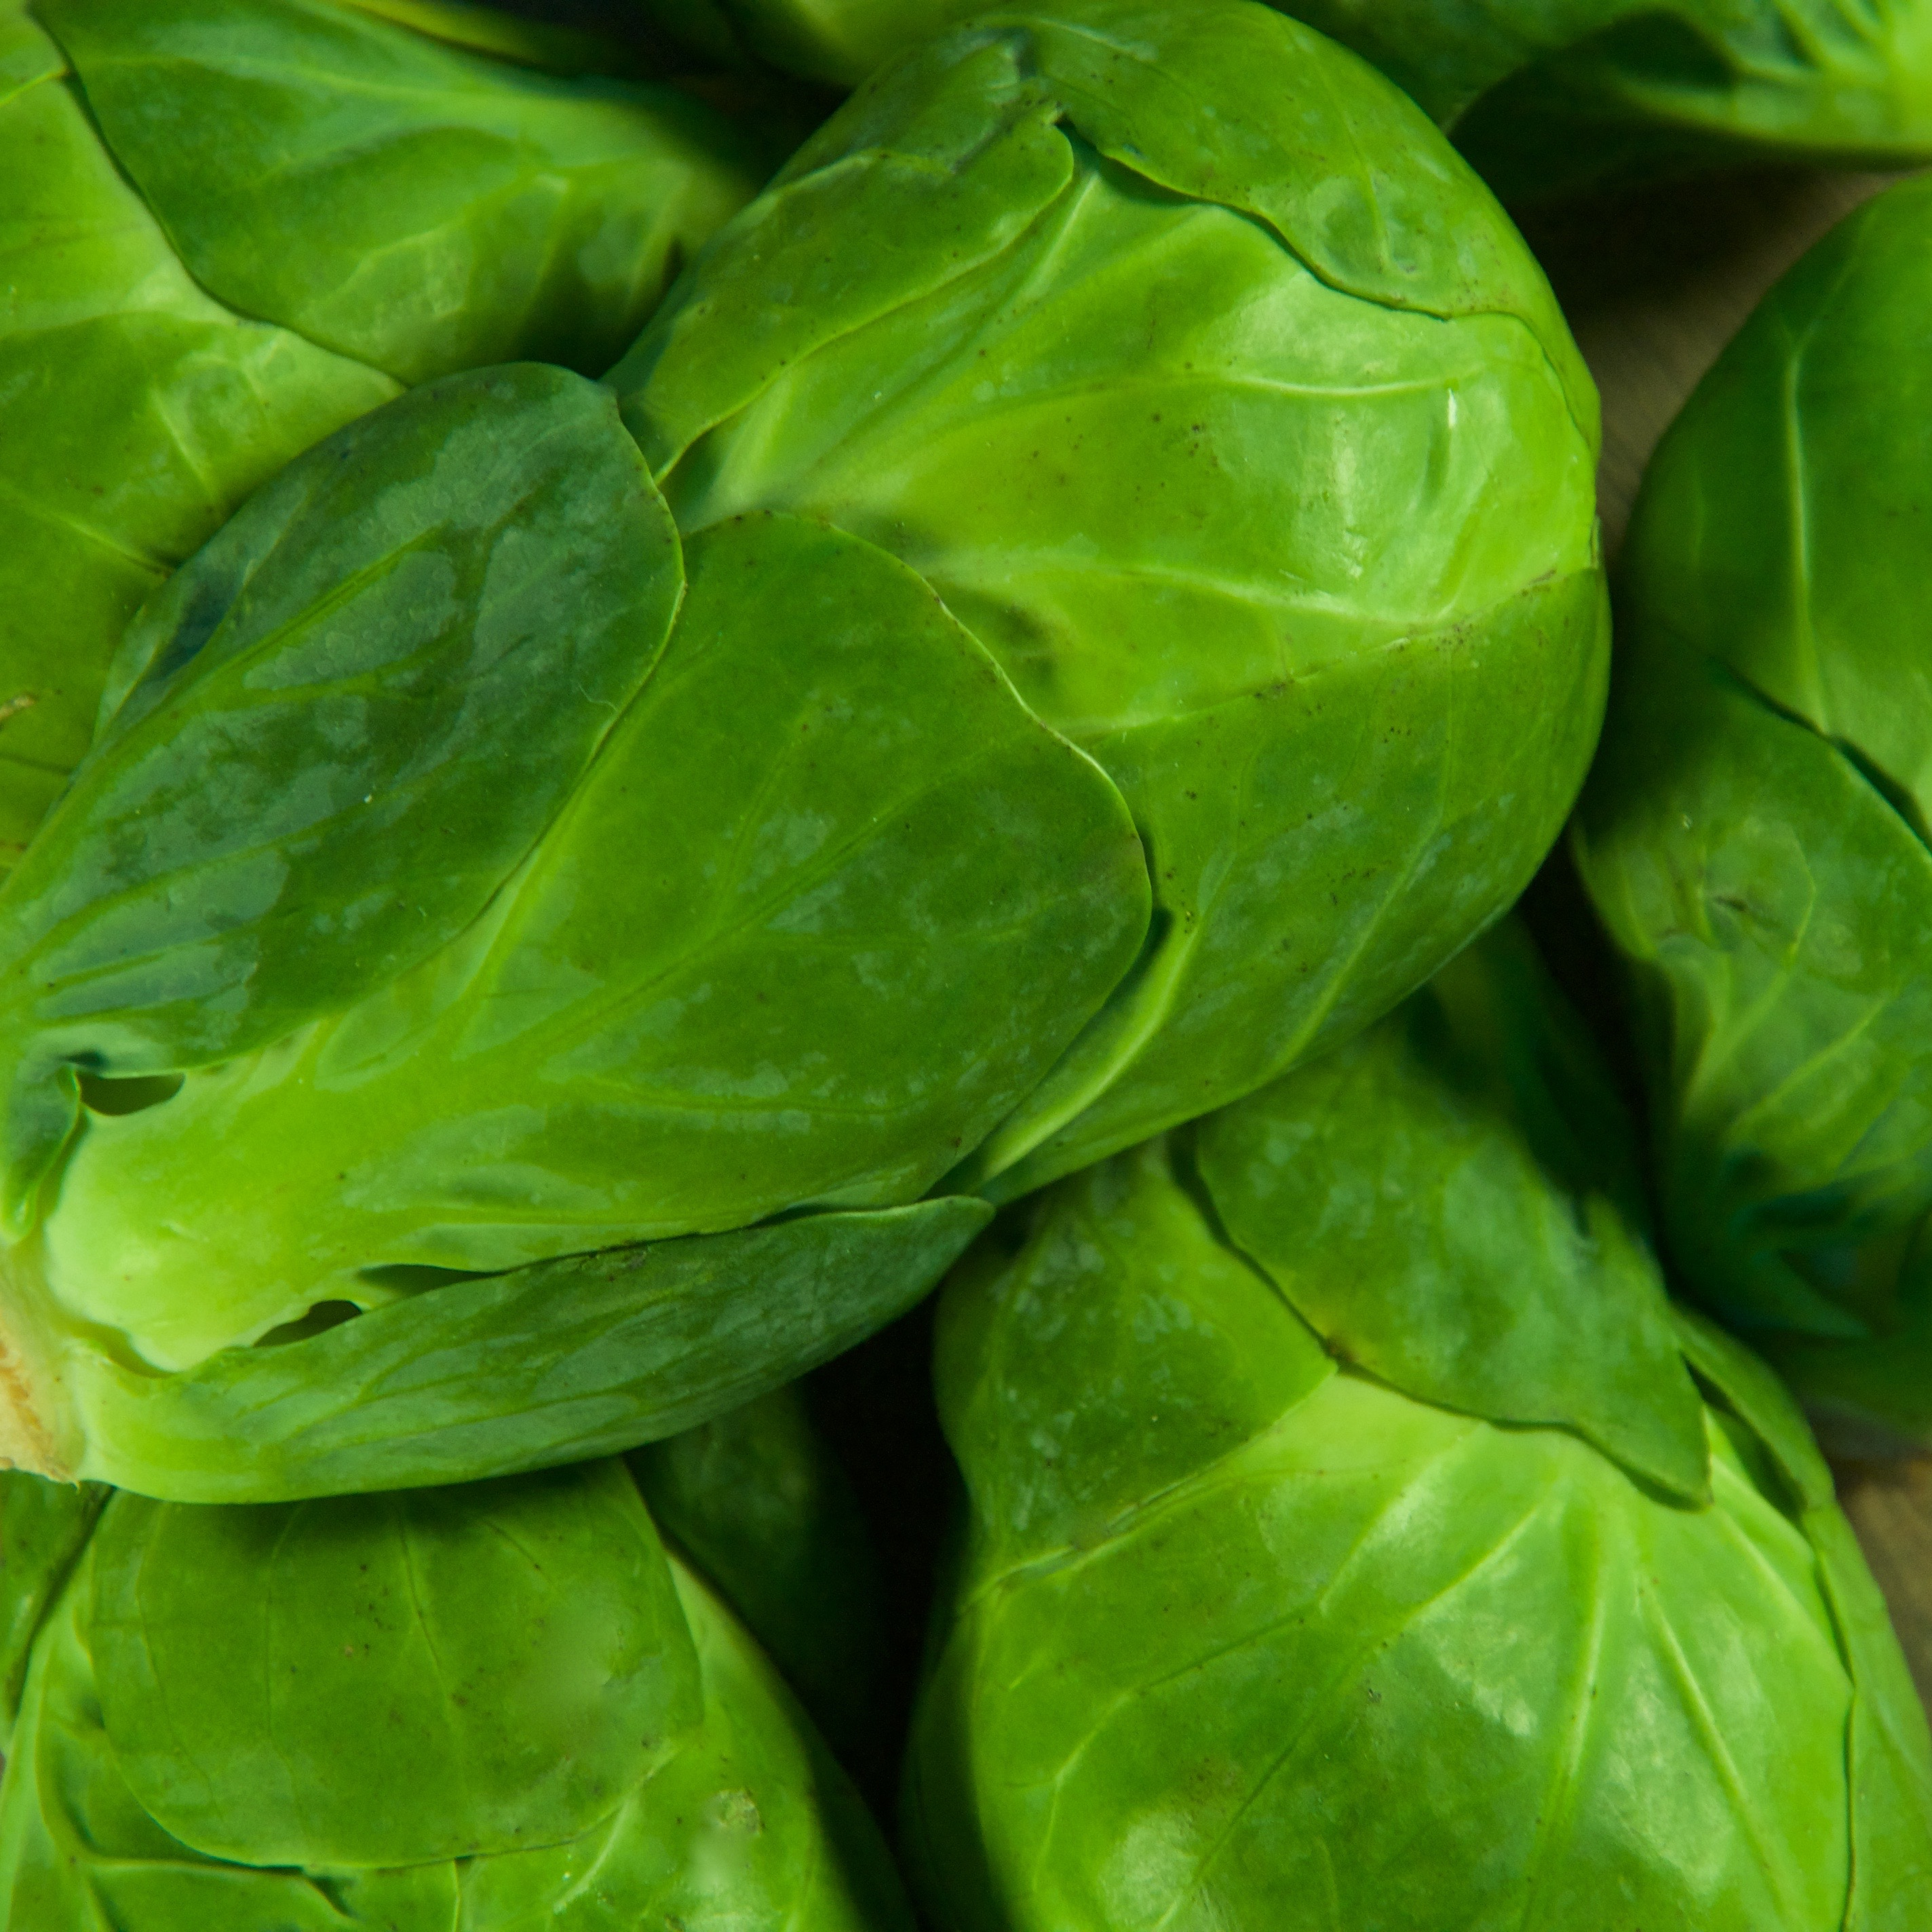 Baby Led Weaning & Meeting Iron Requirements Brussel Sprouts